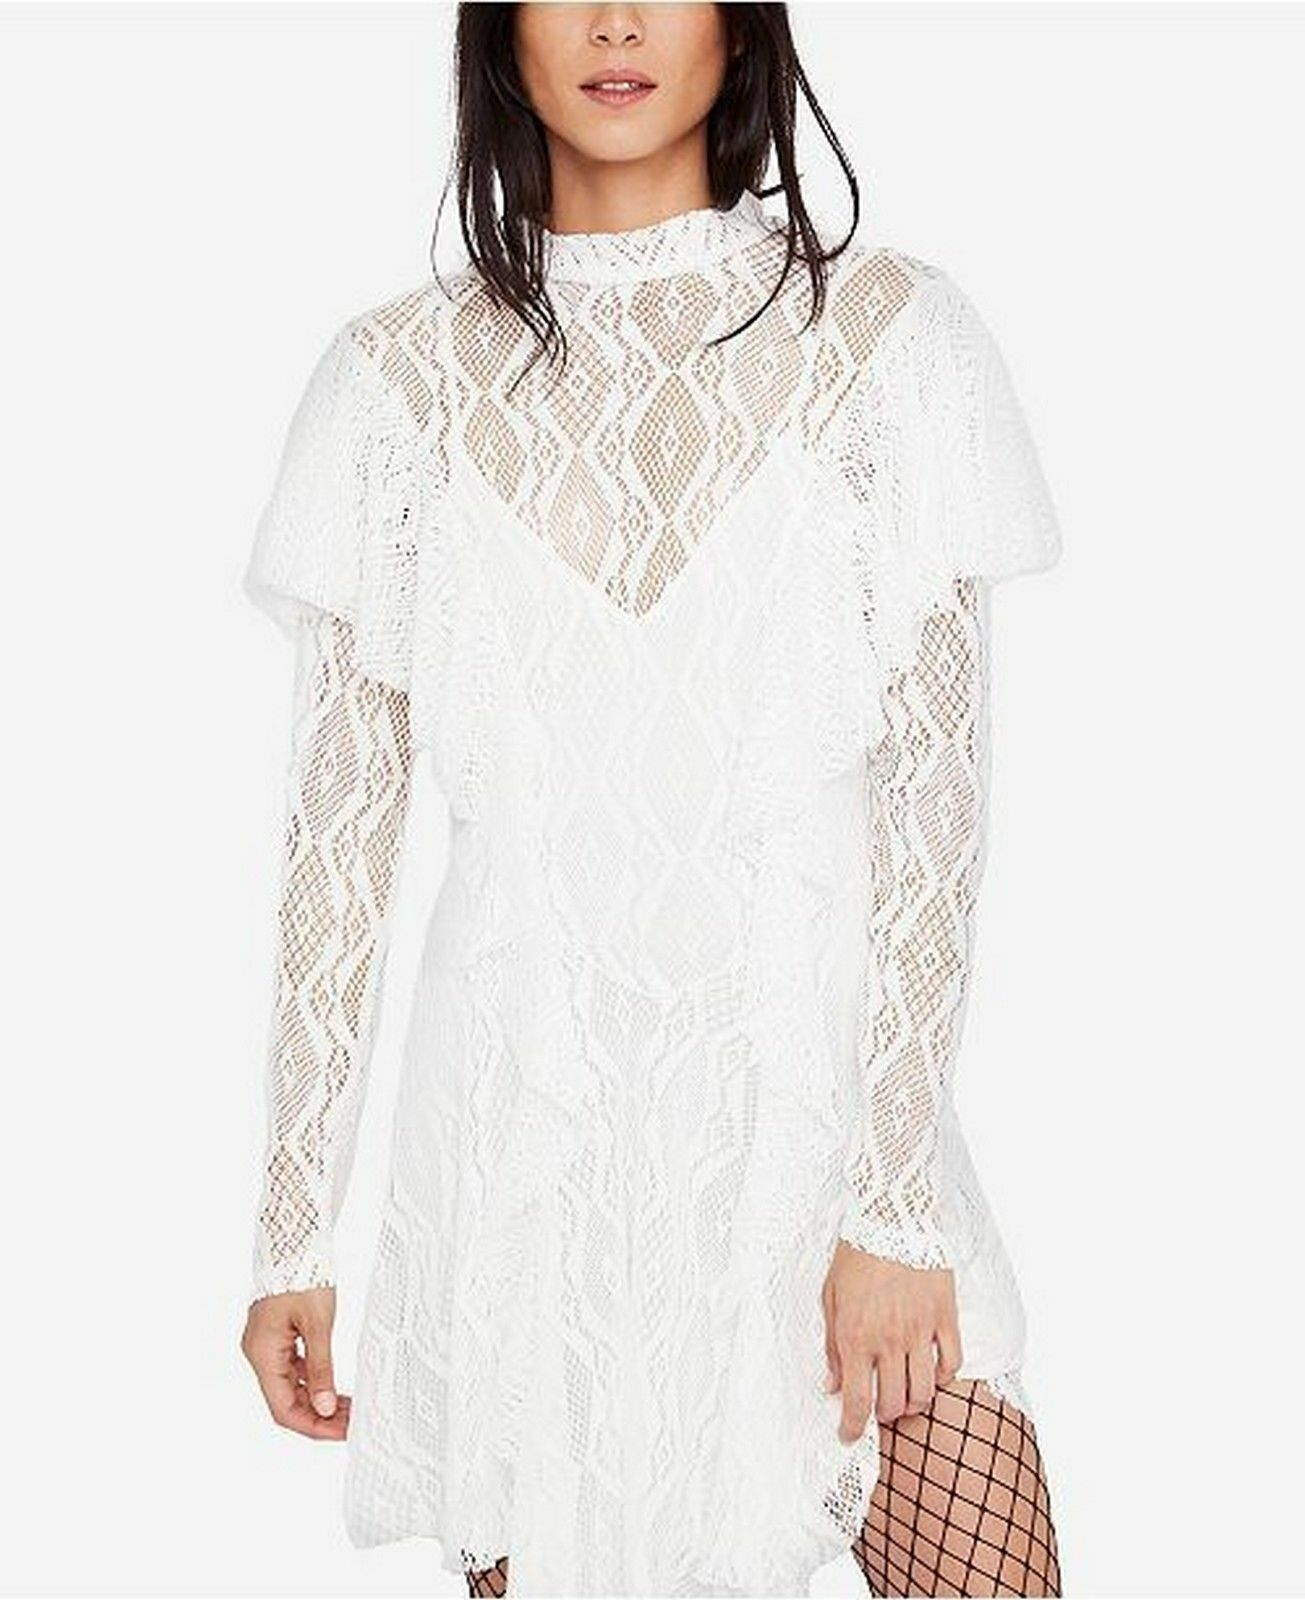 Free People Rock Candy Lace Mock Neck Dress Ivory Größe M NWT  Retail